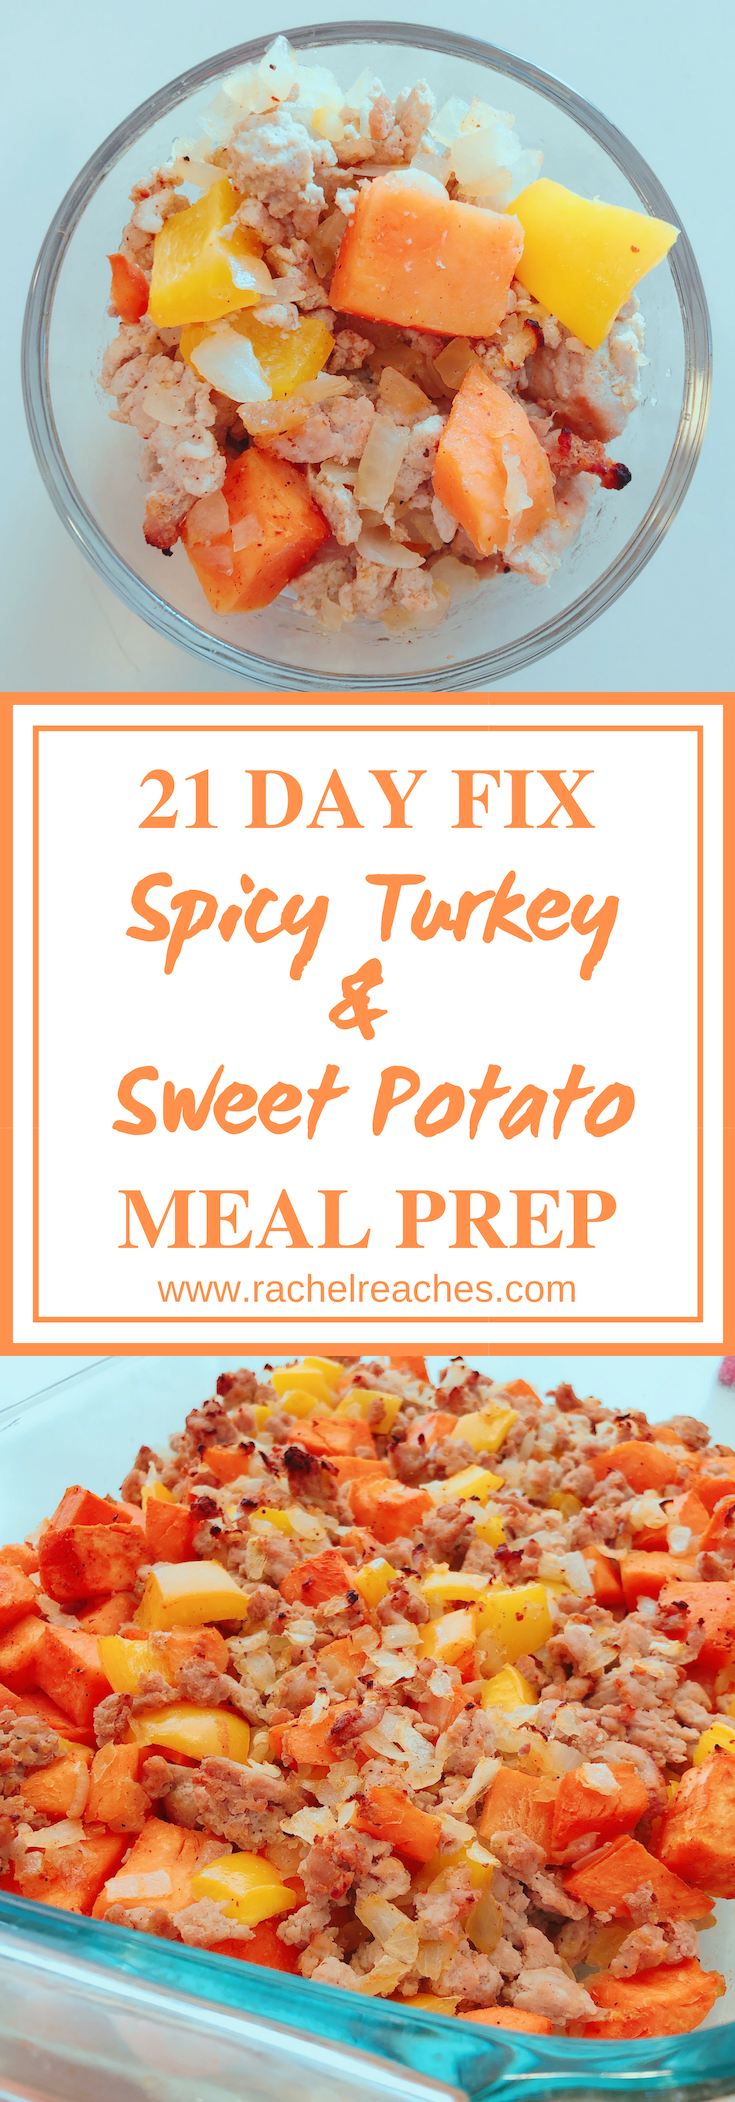 Turkey & Sweet Potato - 21 Day Fix Pin.png